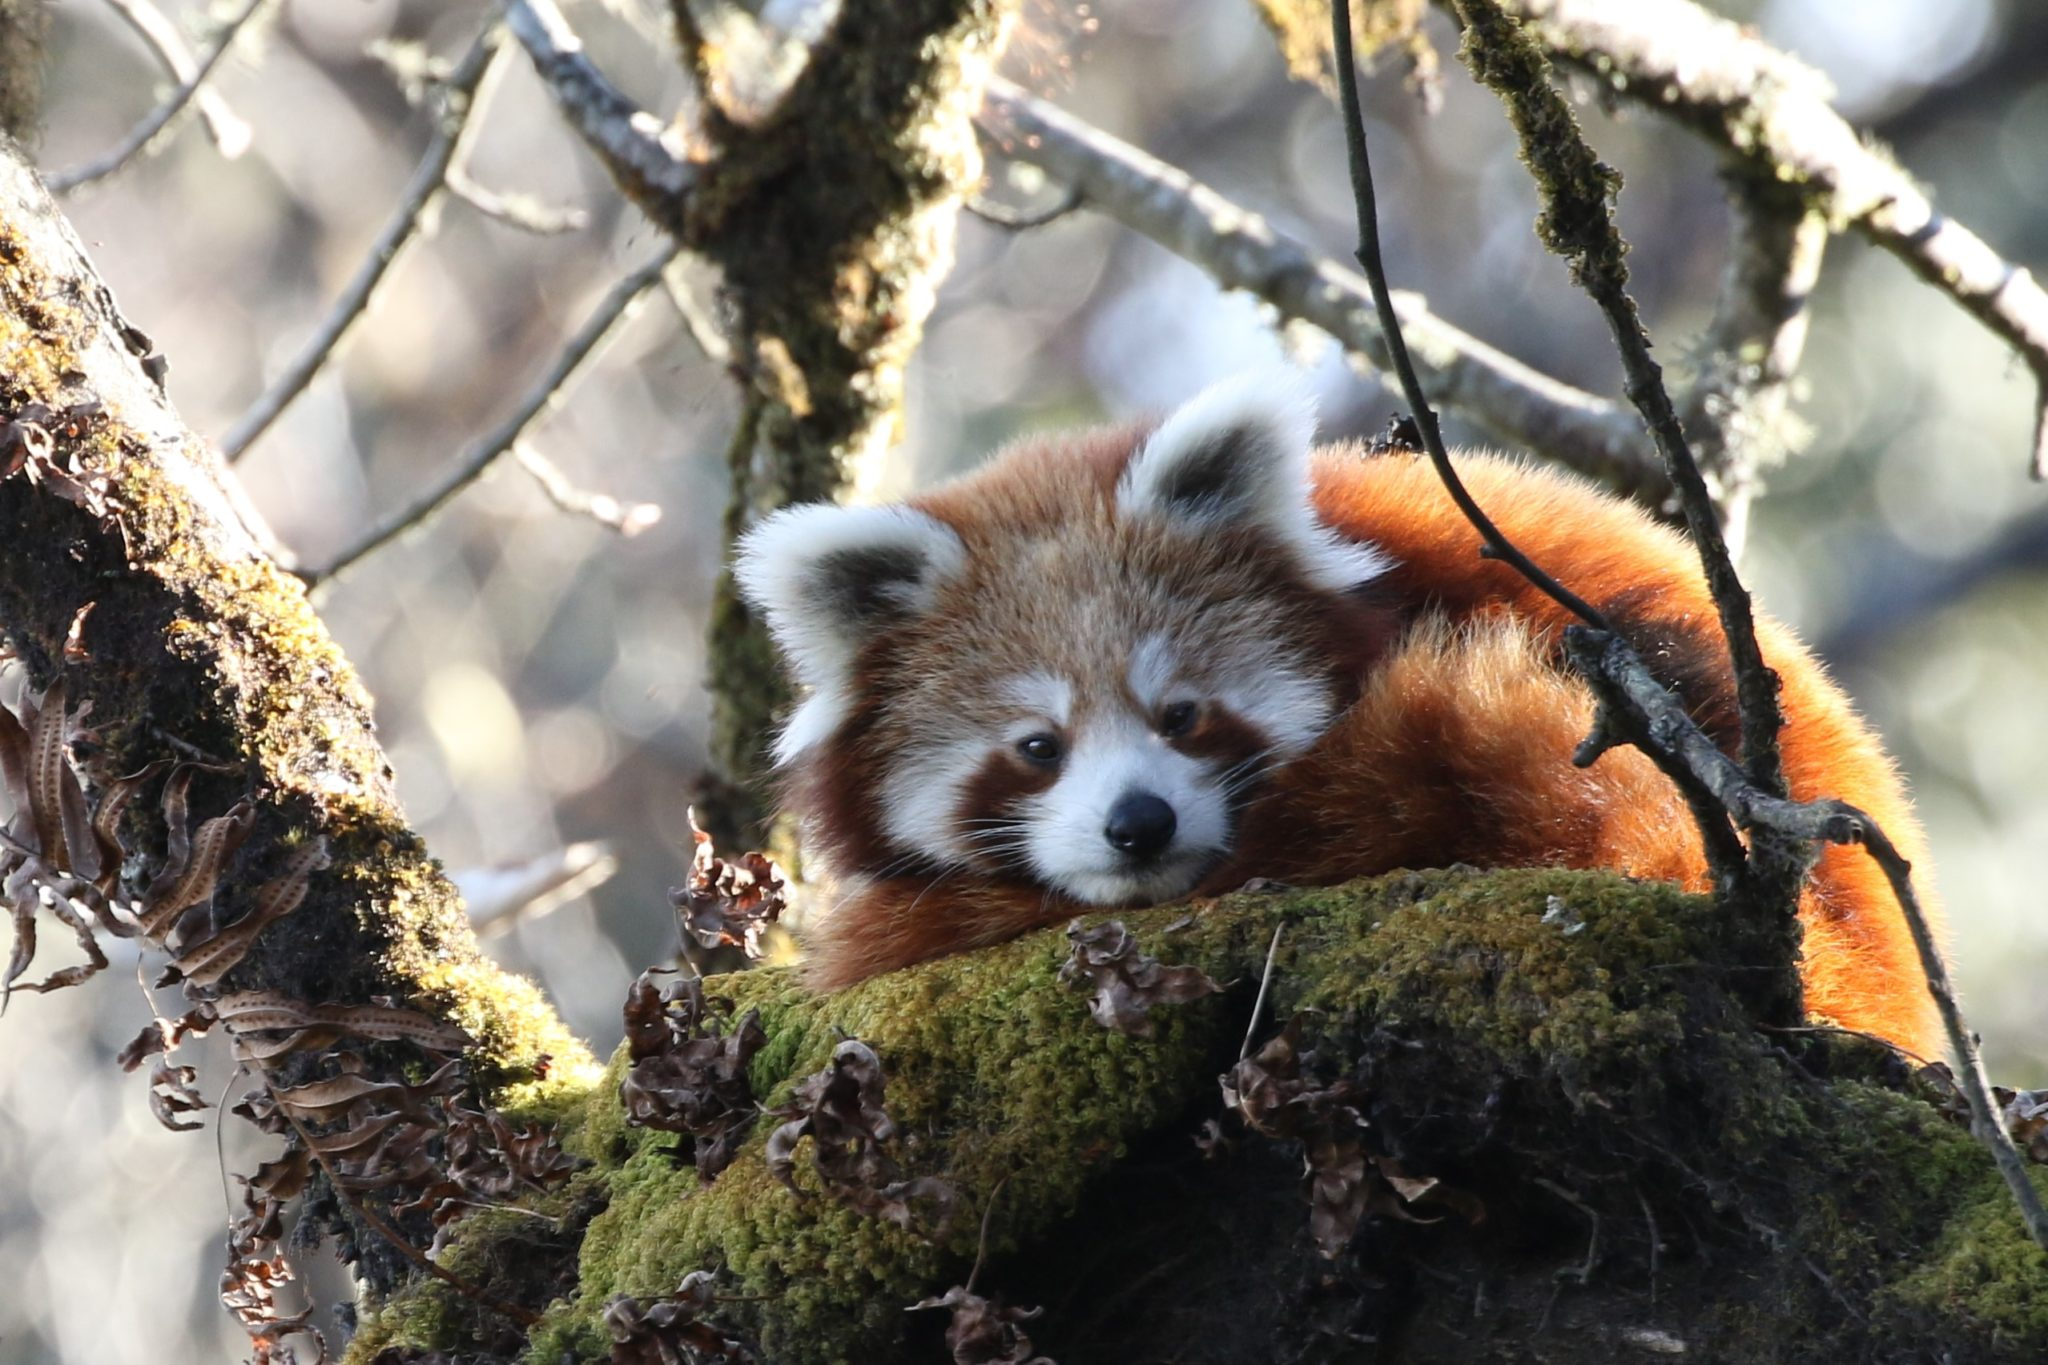 'Fake market': Red panda study finds no real demand behind rise in poaching